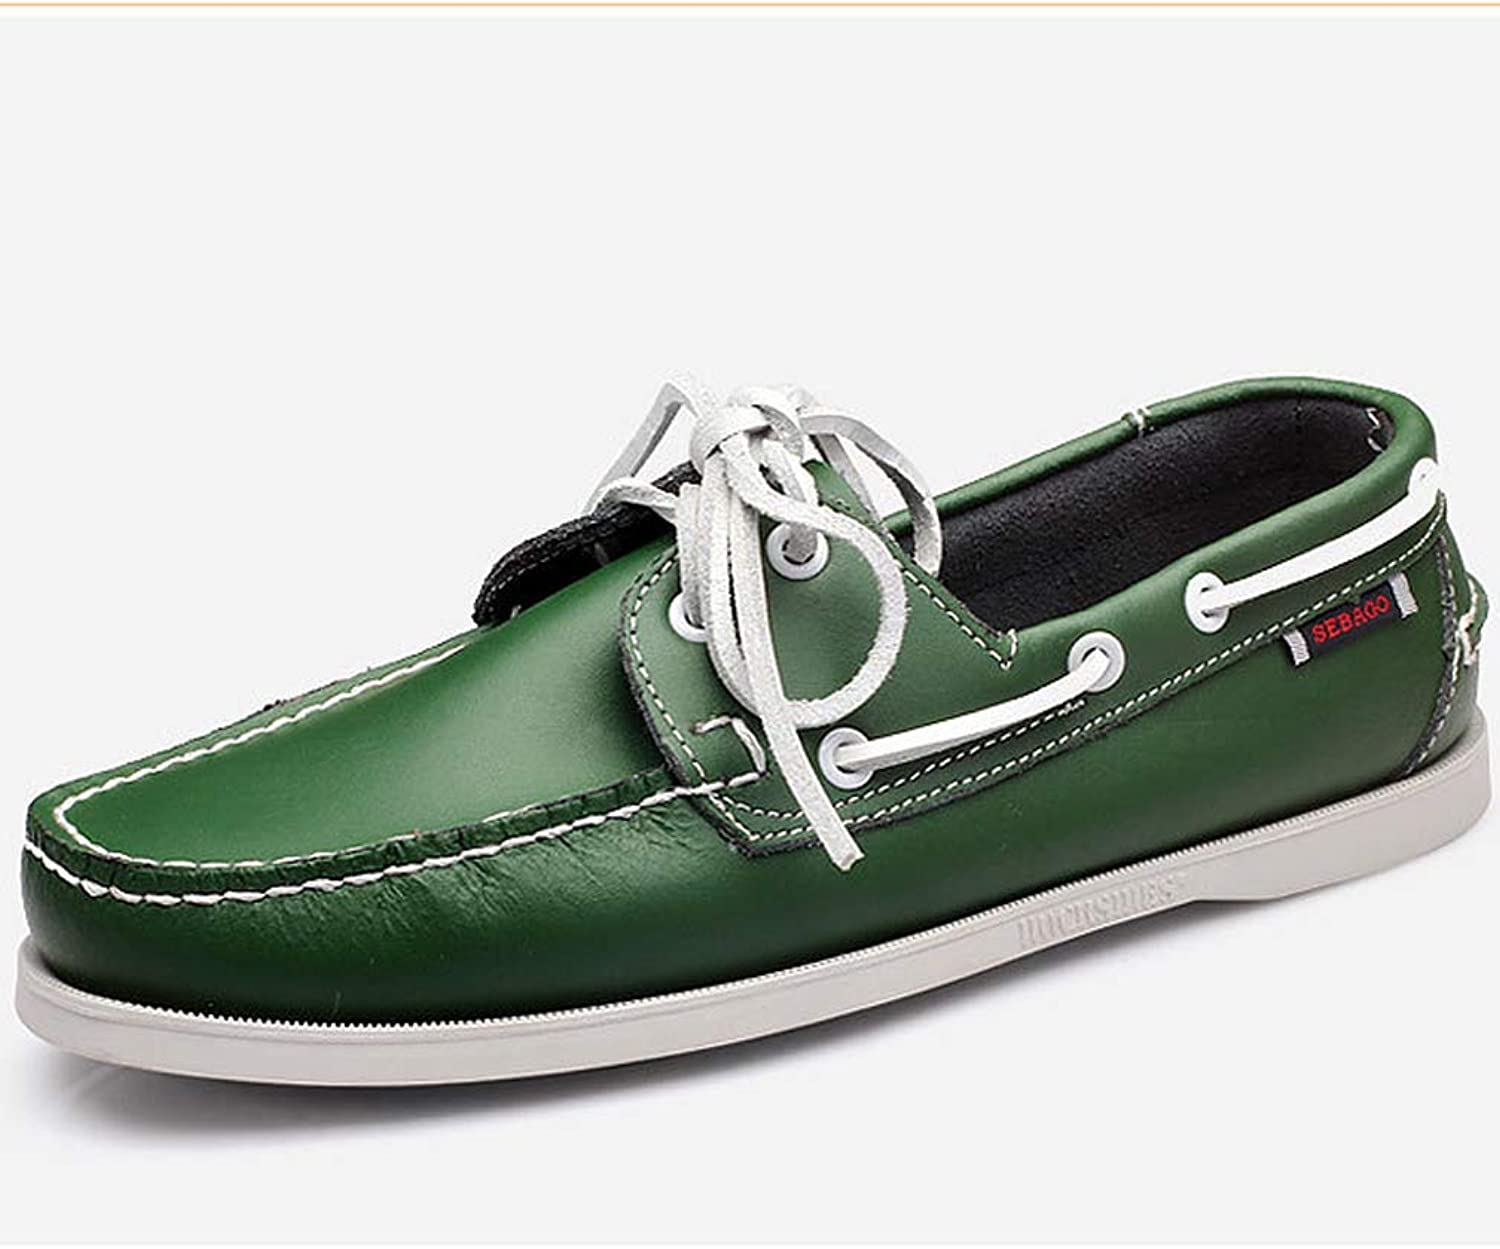 TAZAN Men's leather lace deck casual shoes Moccasin boat shoes outdoor business party spring and autumn breathable driving shoes black white brown green red